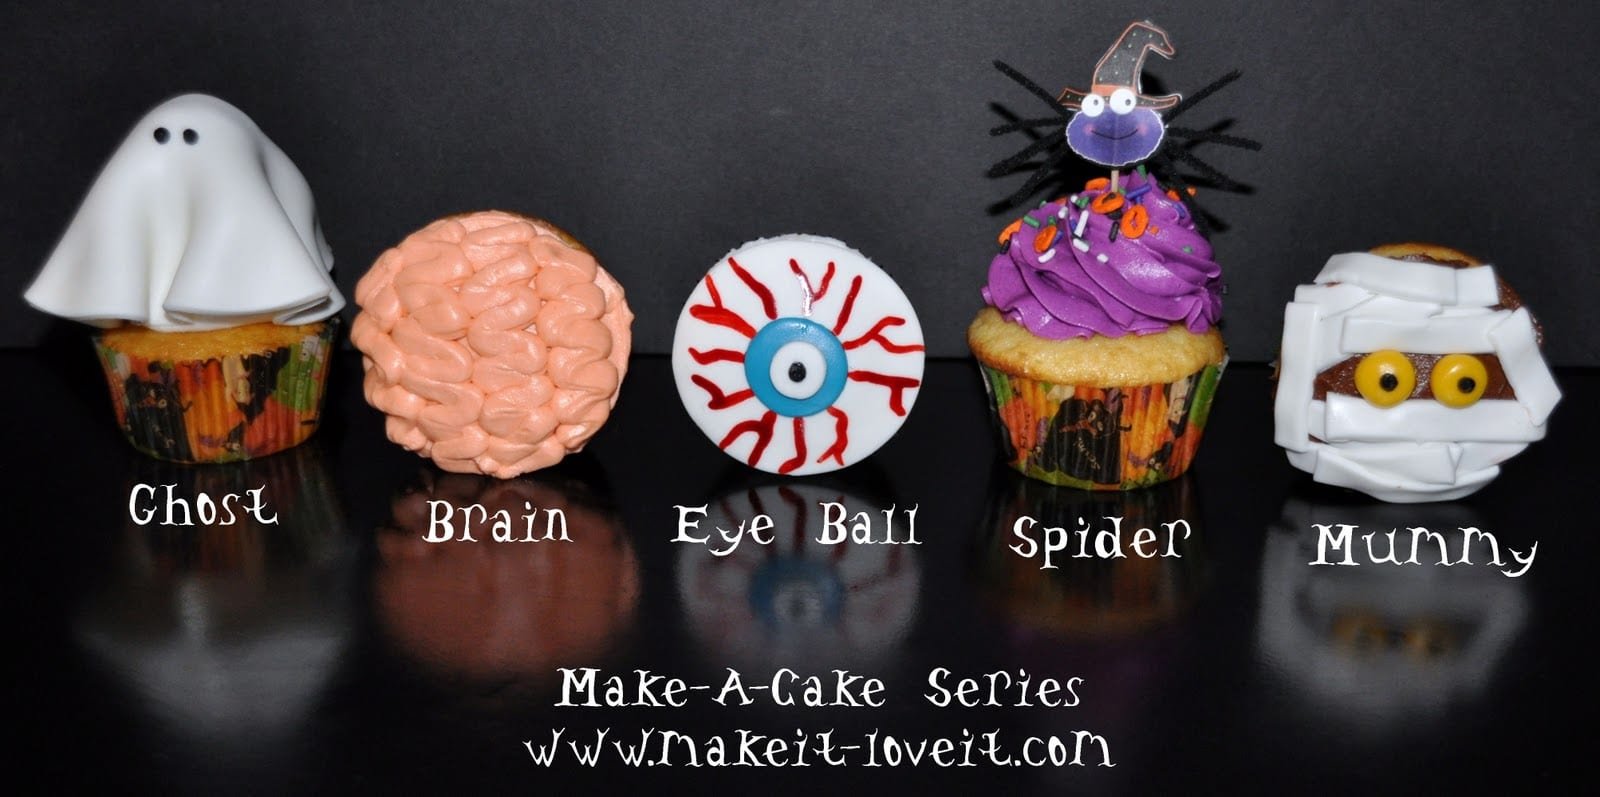 Make-a-Cake Series: Halloween Cupcakes